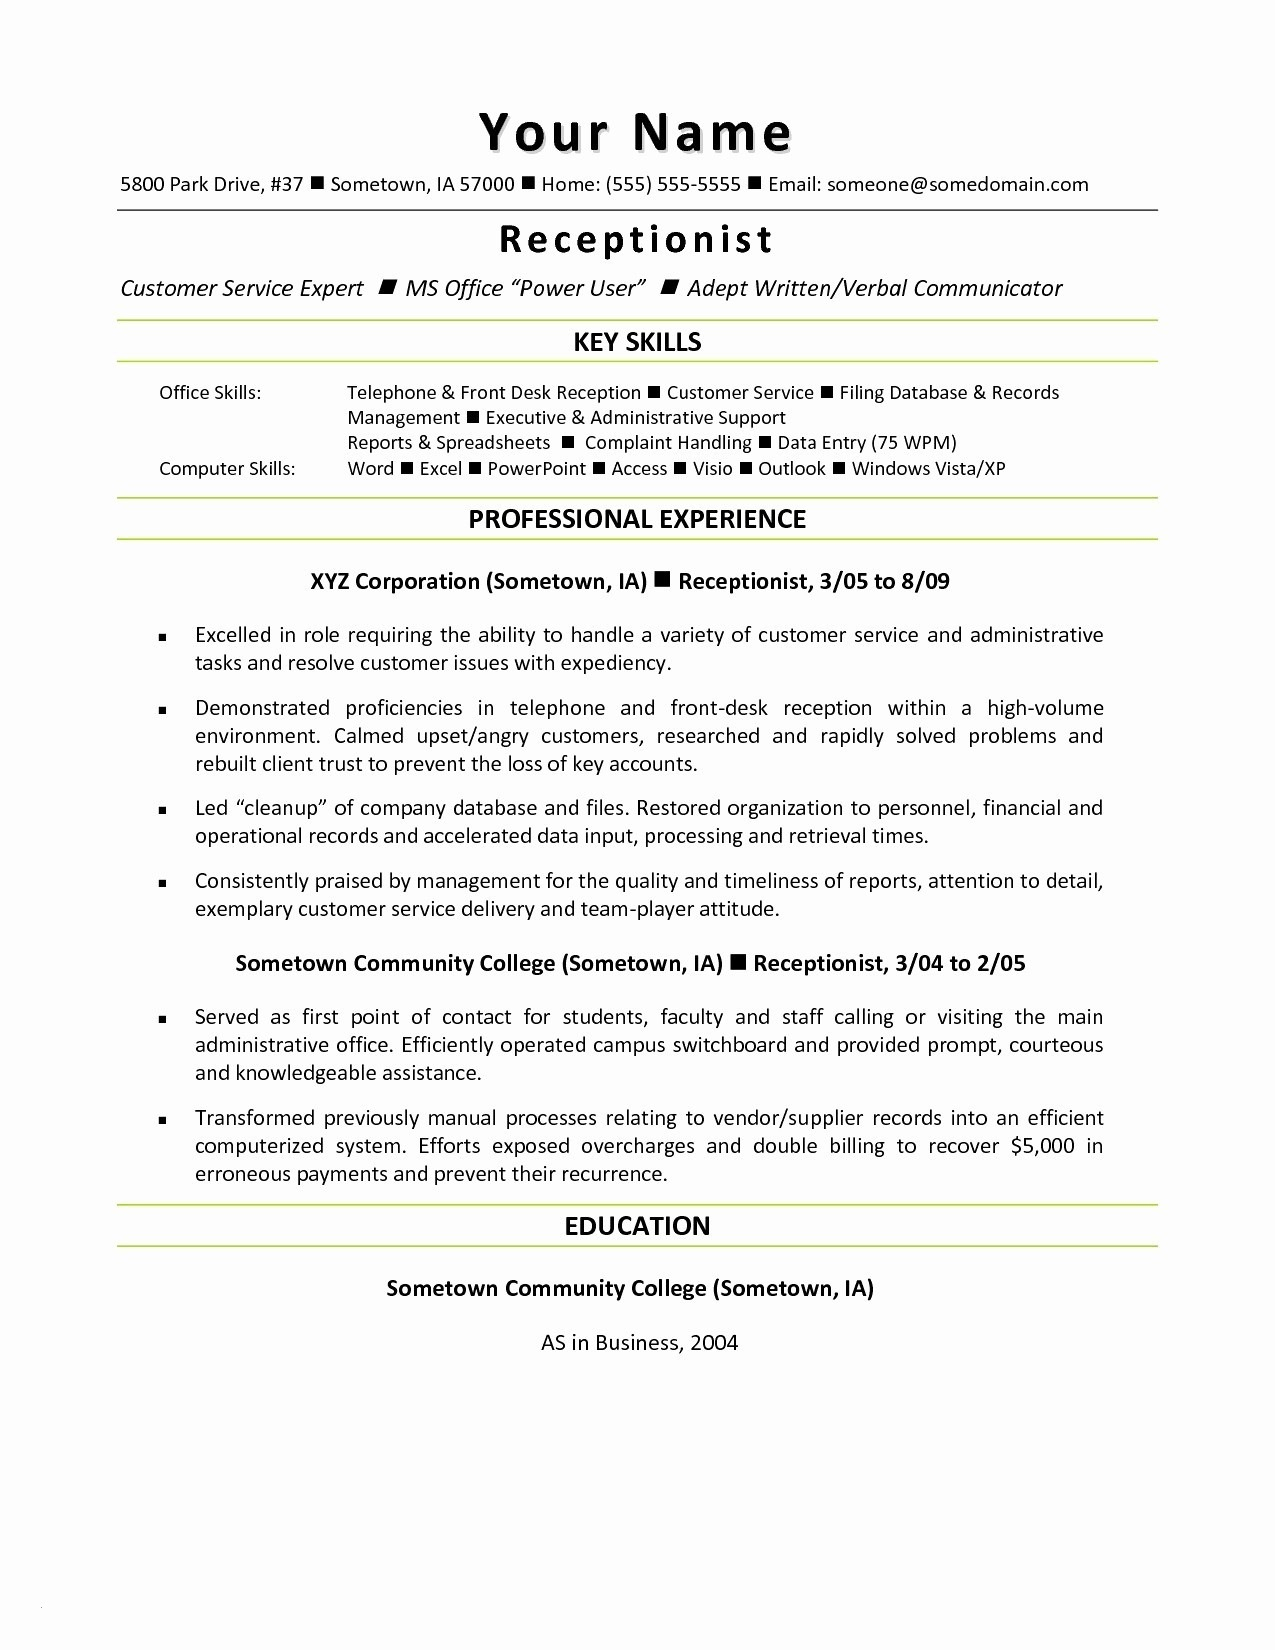 Best Nursing Resume - Construction Job Resume Unique Elegant Good Nursing Resume Elegant